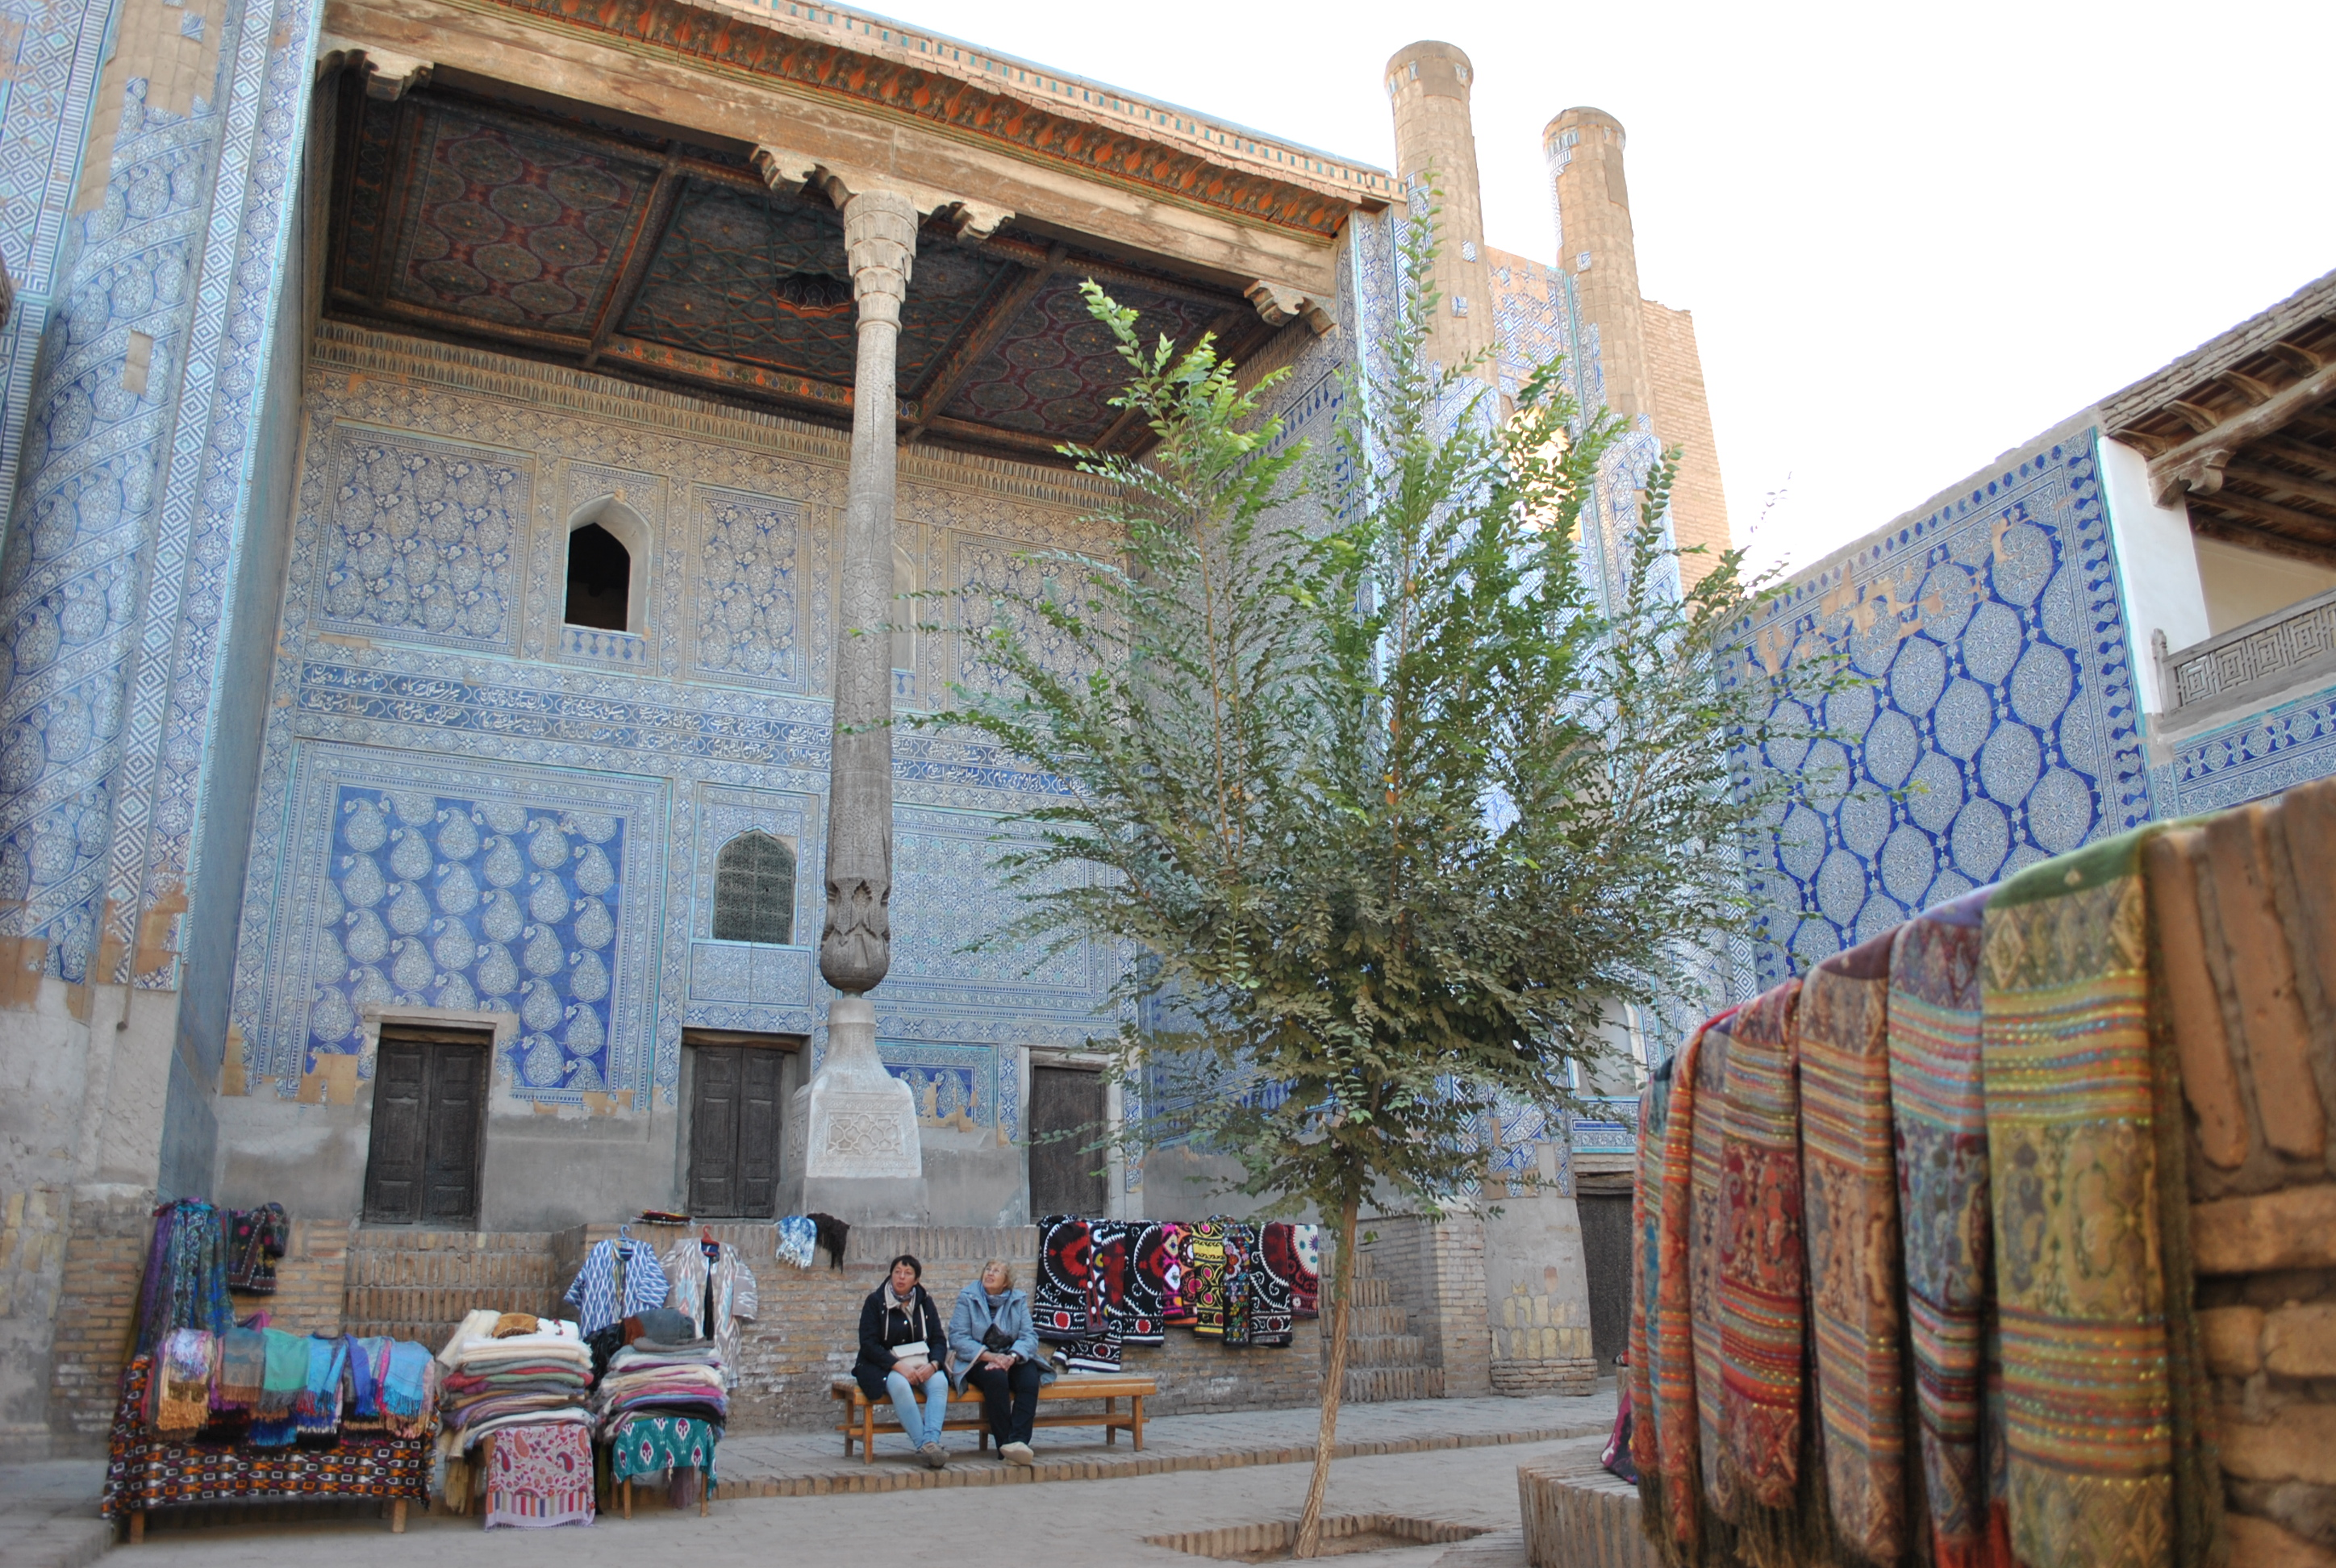 Visitors admiring Itchan Kala, the inner fortress of Khiva, full of craft vendors.